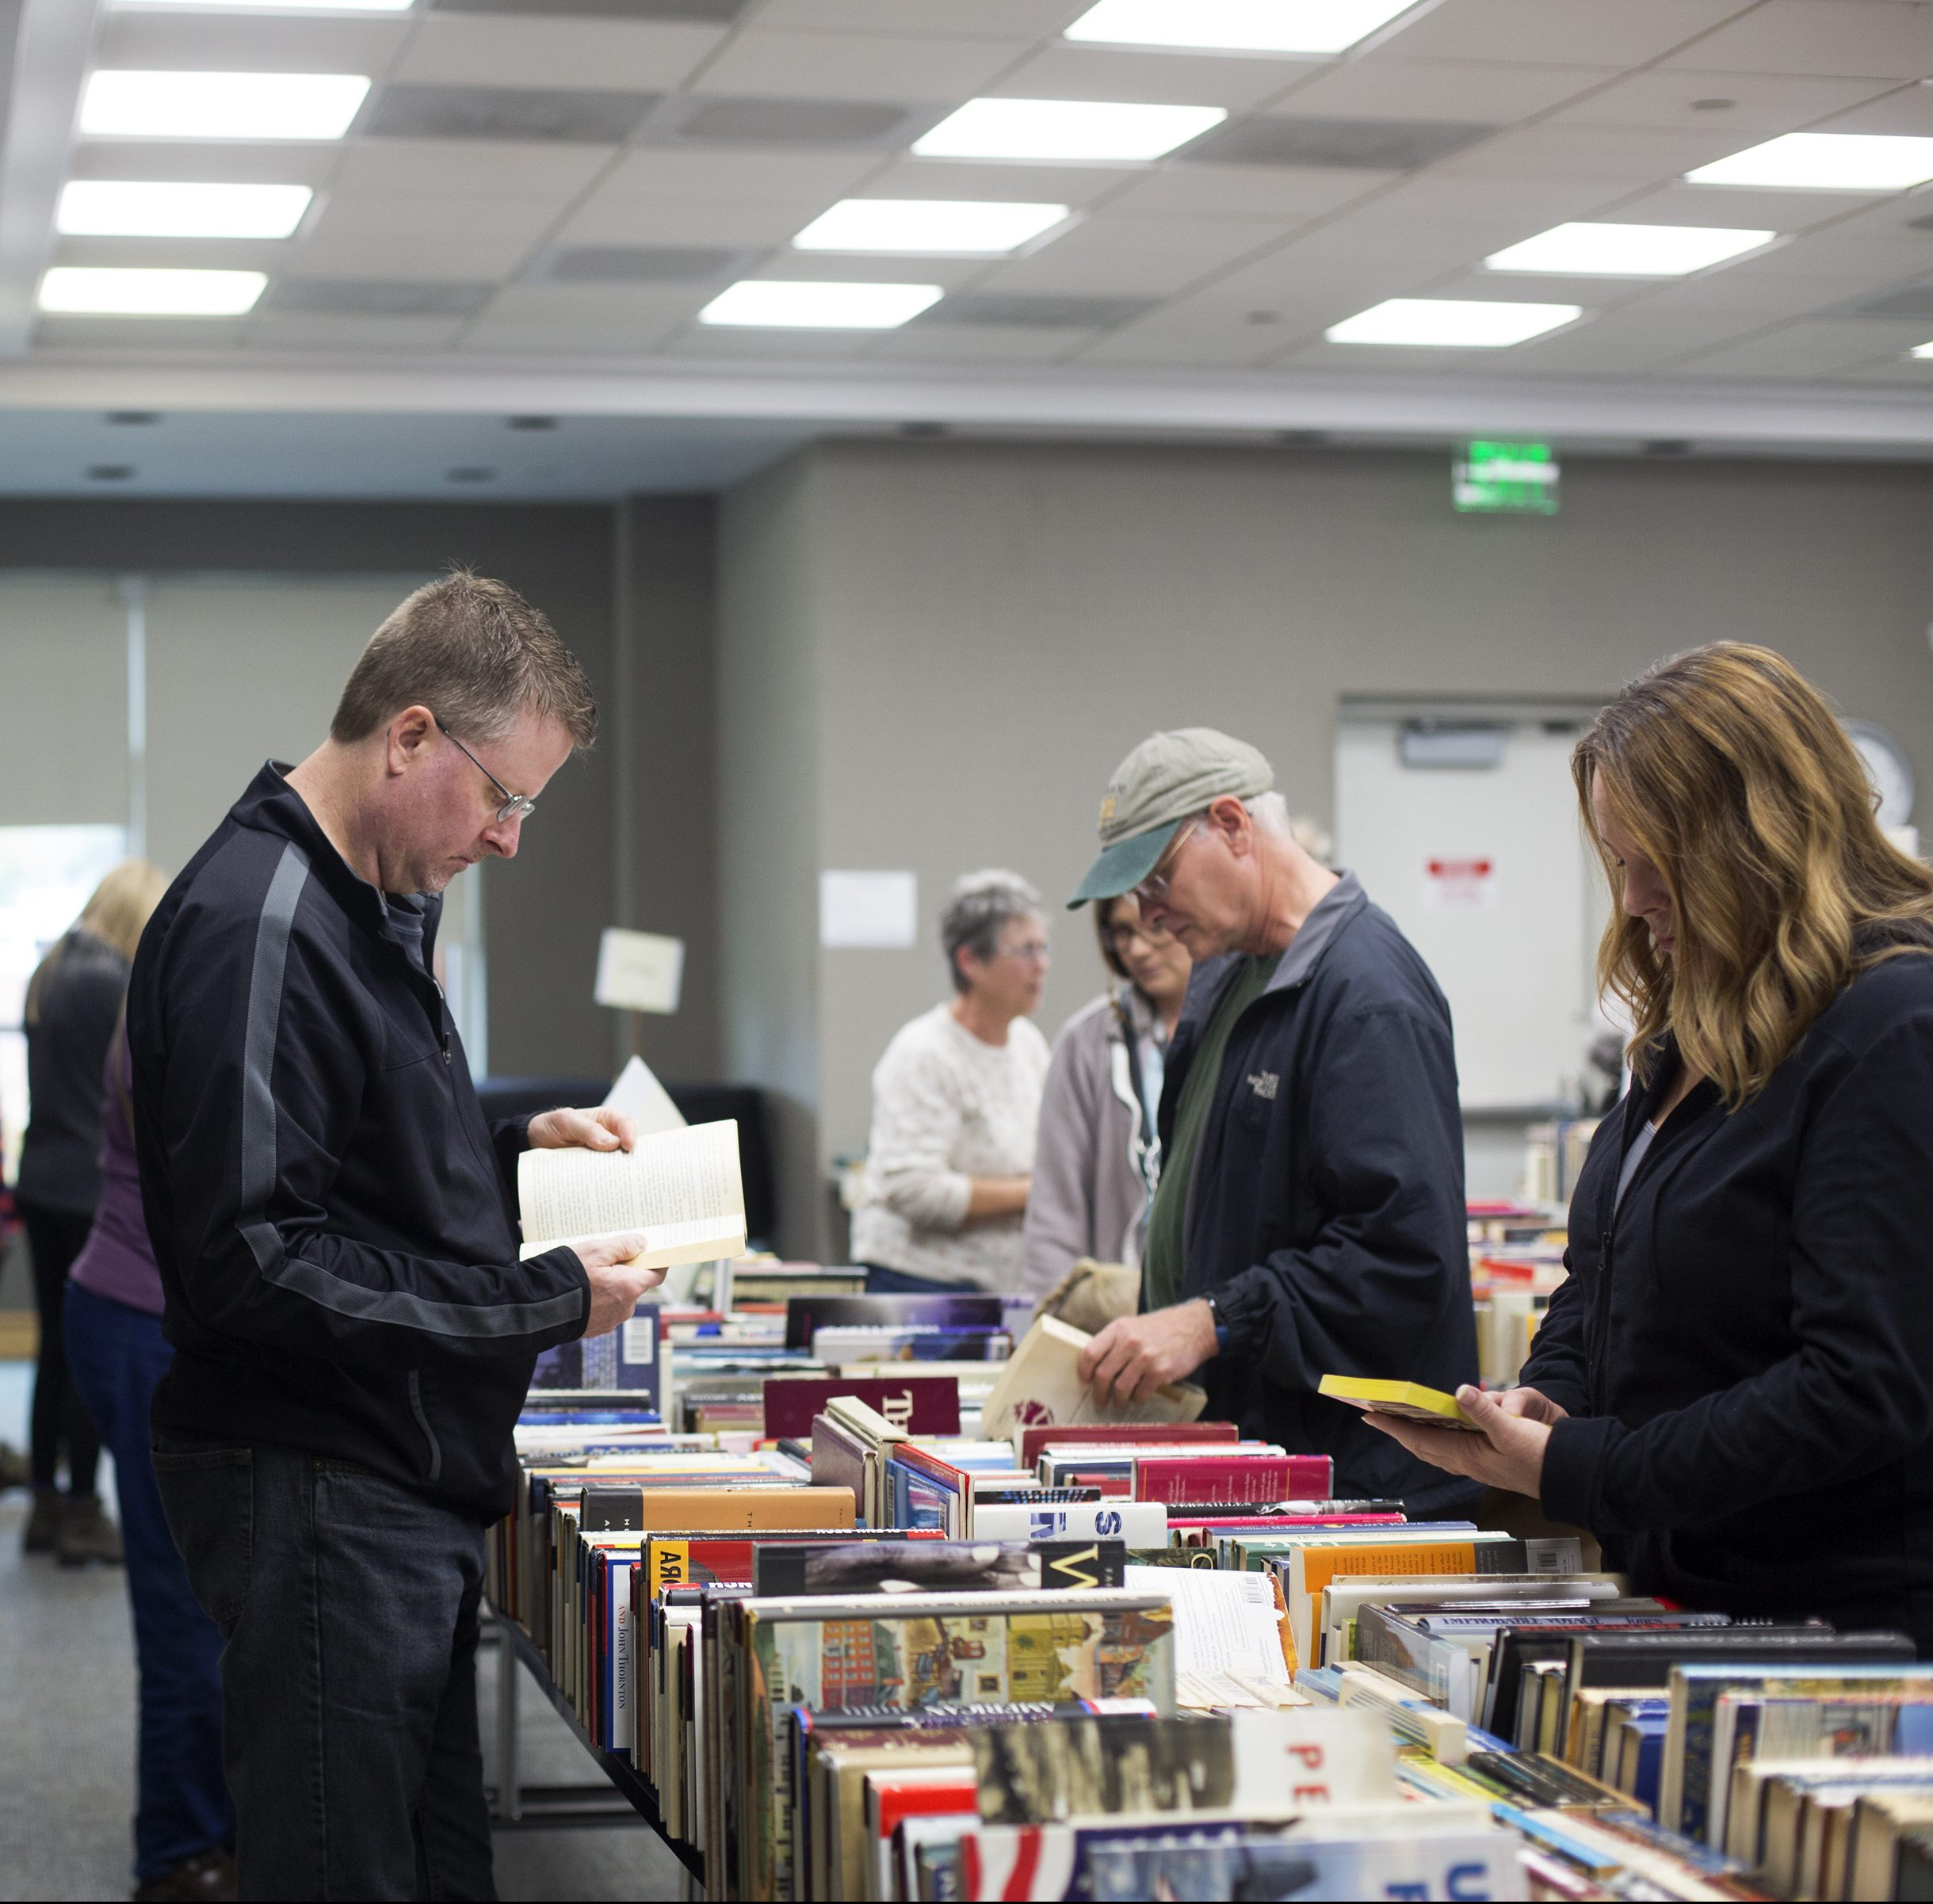 Patrons browse books at a book sale hosted by friends of the library